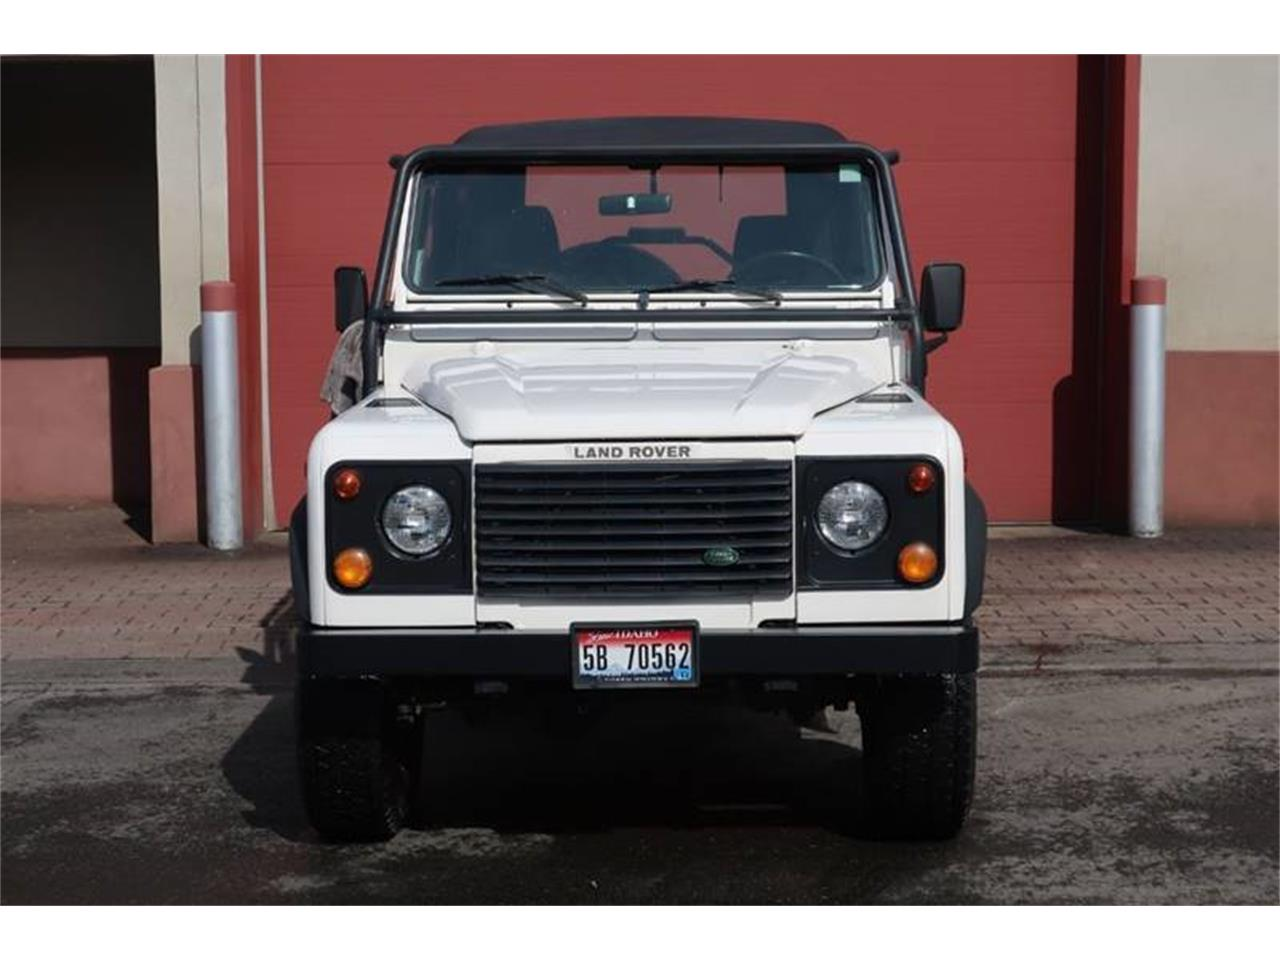 1995 Land Rover Defender for sale in Hailey, ID – photo 3